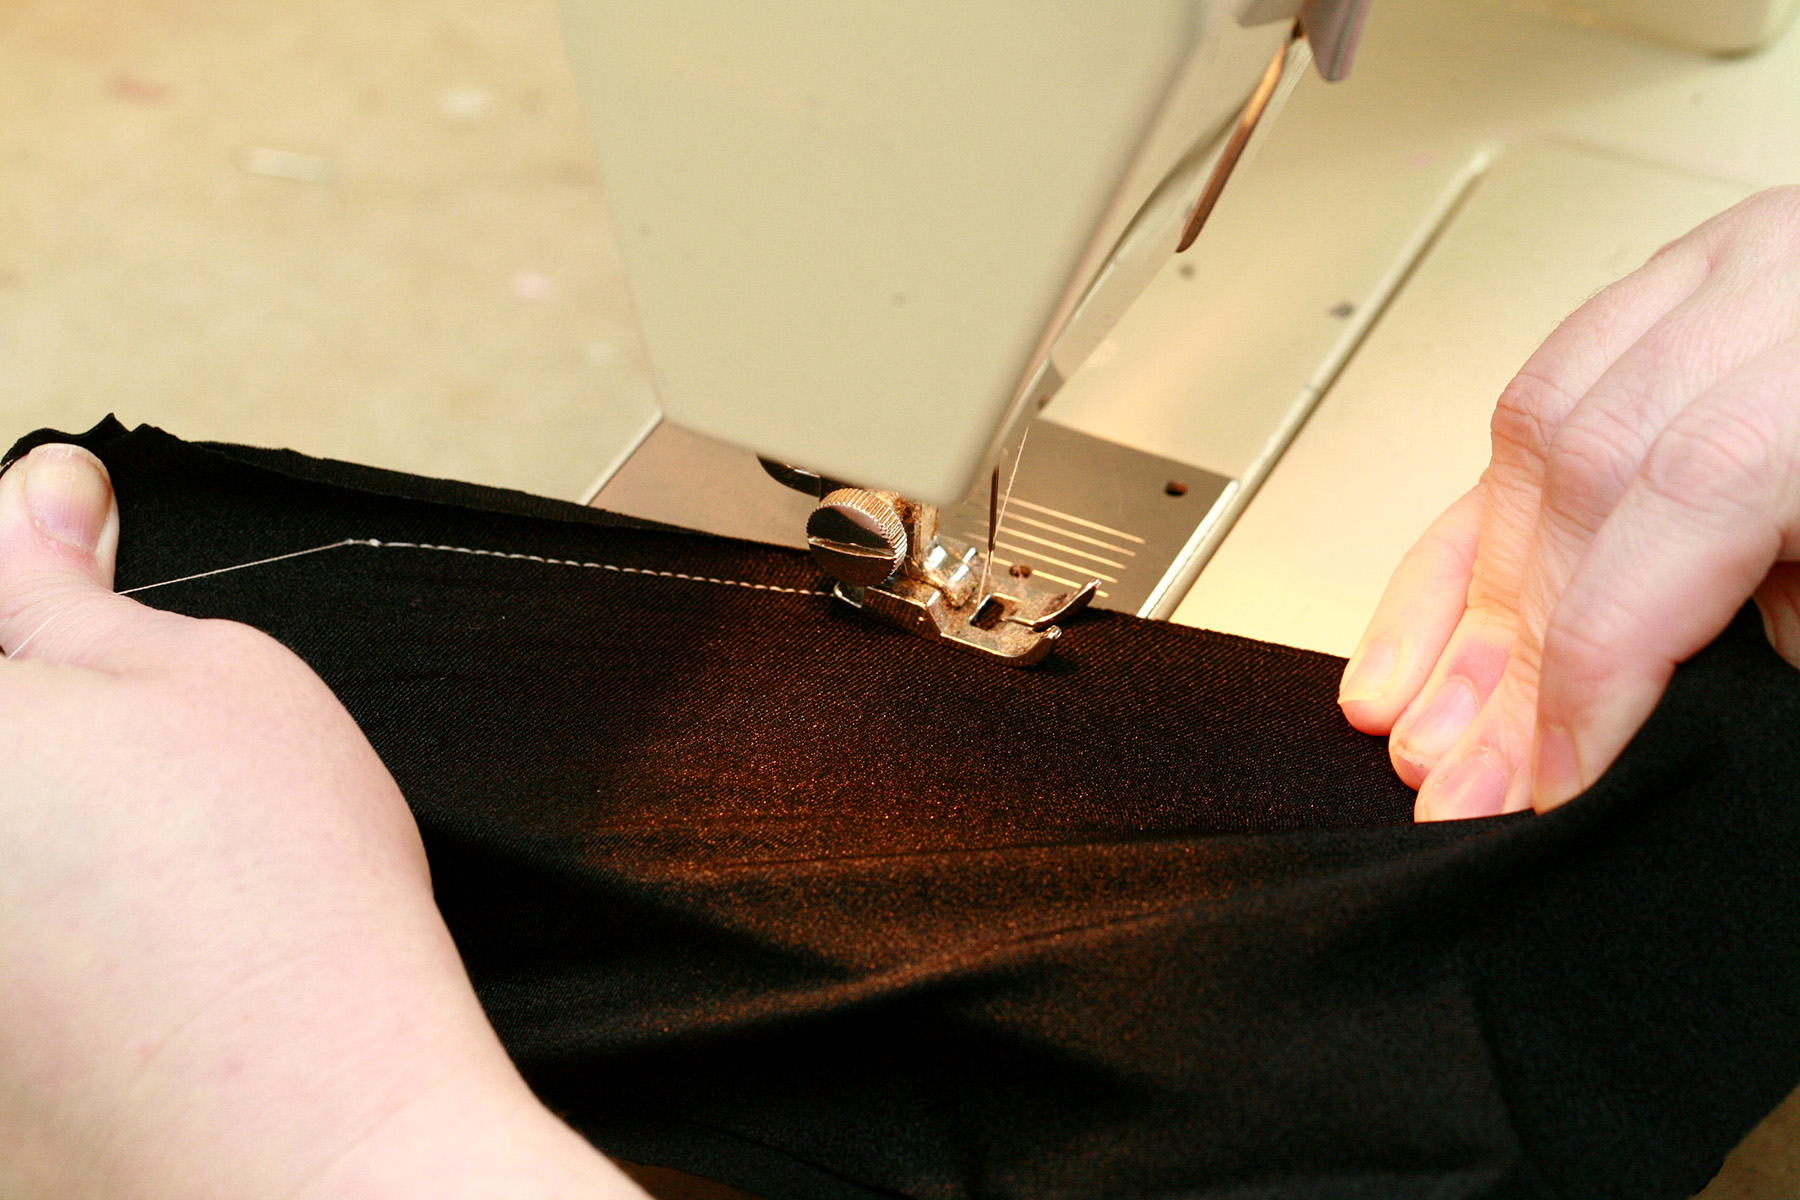 Two hands are sewing a piece of black spandex fabric with a stretch stitch, in a sewing machine.